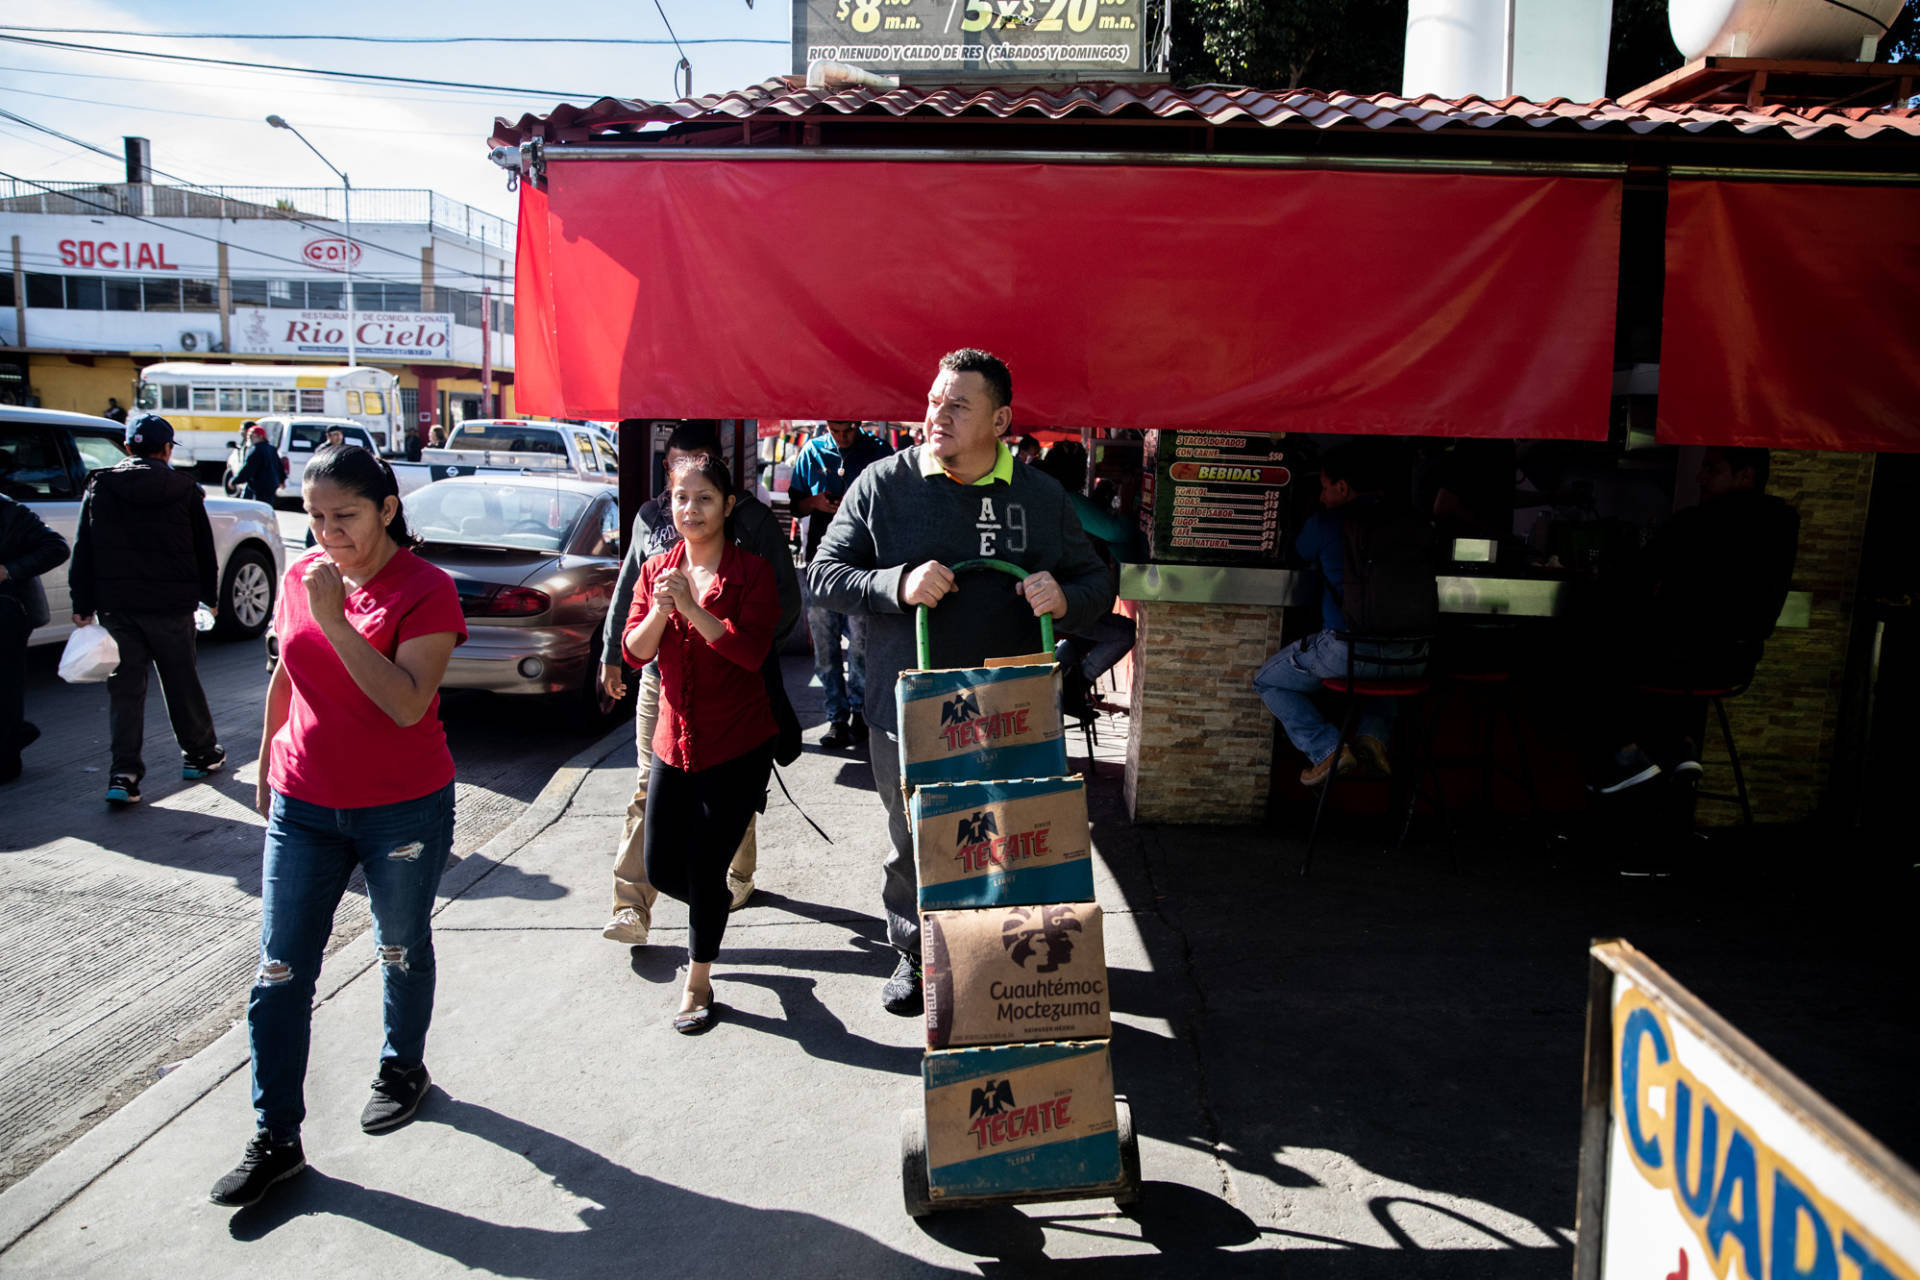 José Aguilar heads to the store on a supply run in Tijuana, Mexico. His restaurant Honduras 504 has become a community center for Honduran legal residents and unauthorized migrants alike. Tomás Ayuso for NPR